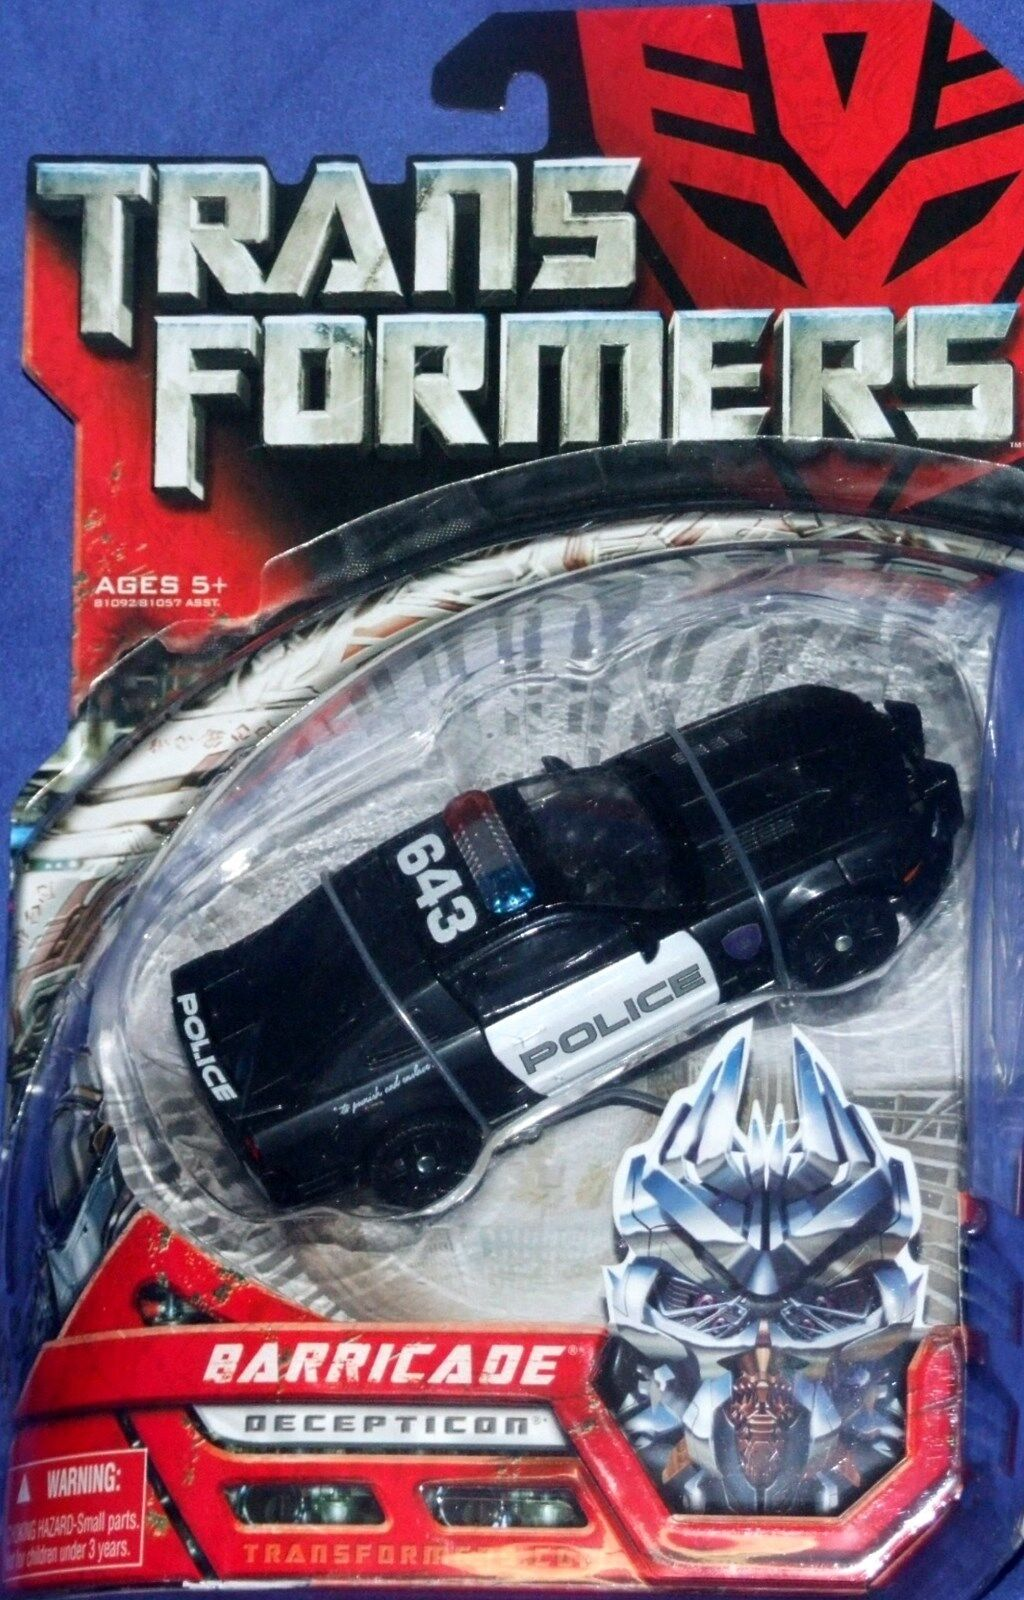 Transformers Movie Deluxe Class Deception BARRICADE Police Car Mustang Nuovo